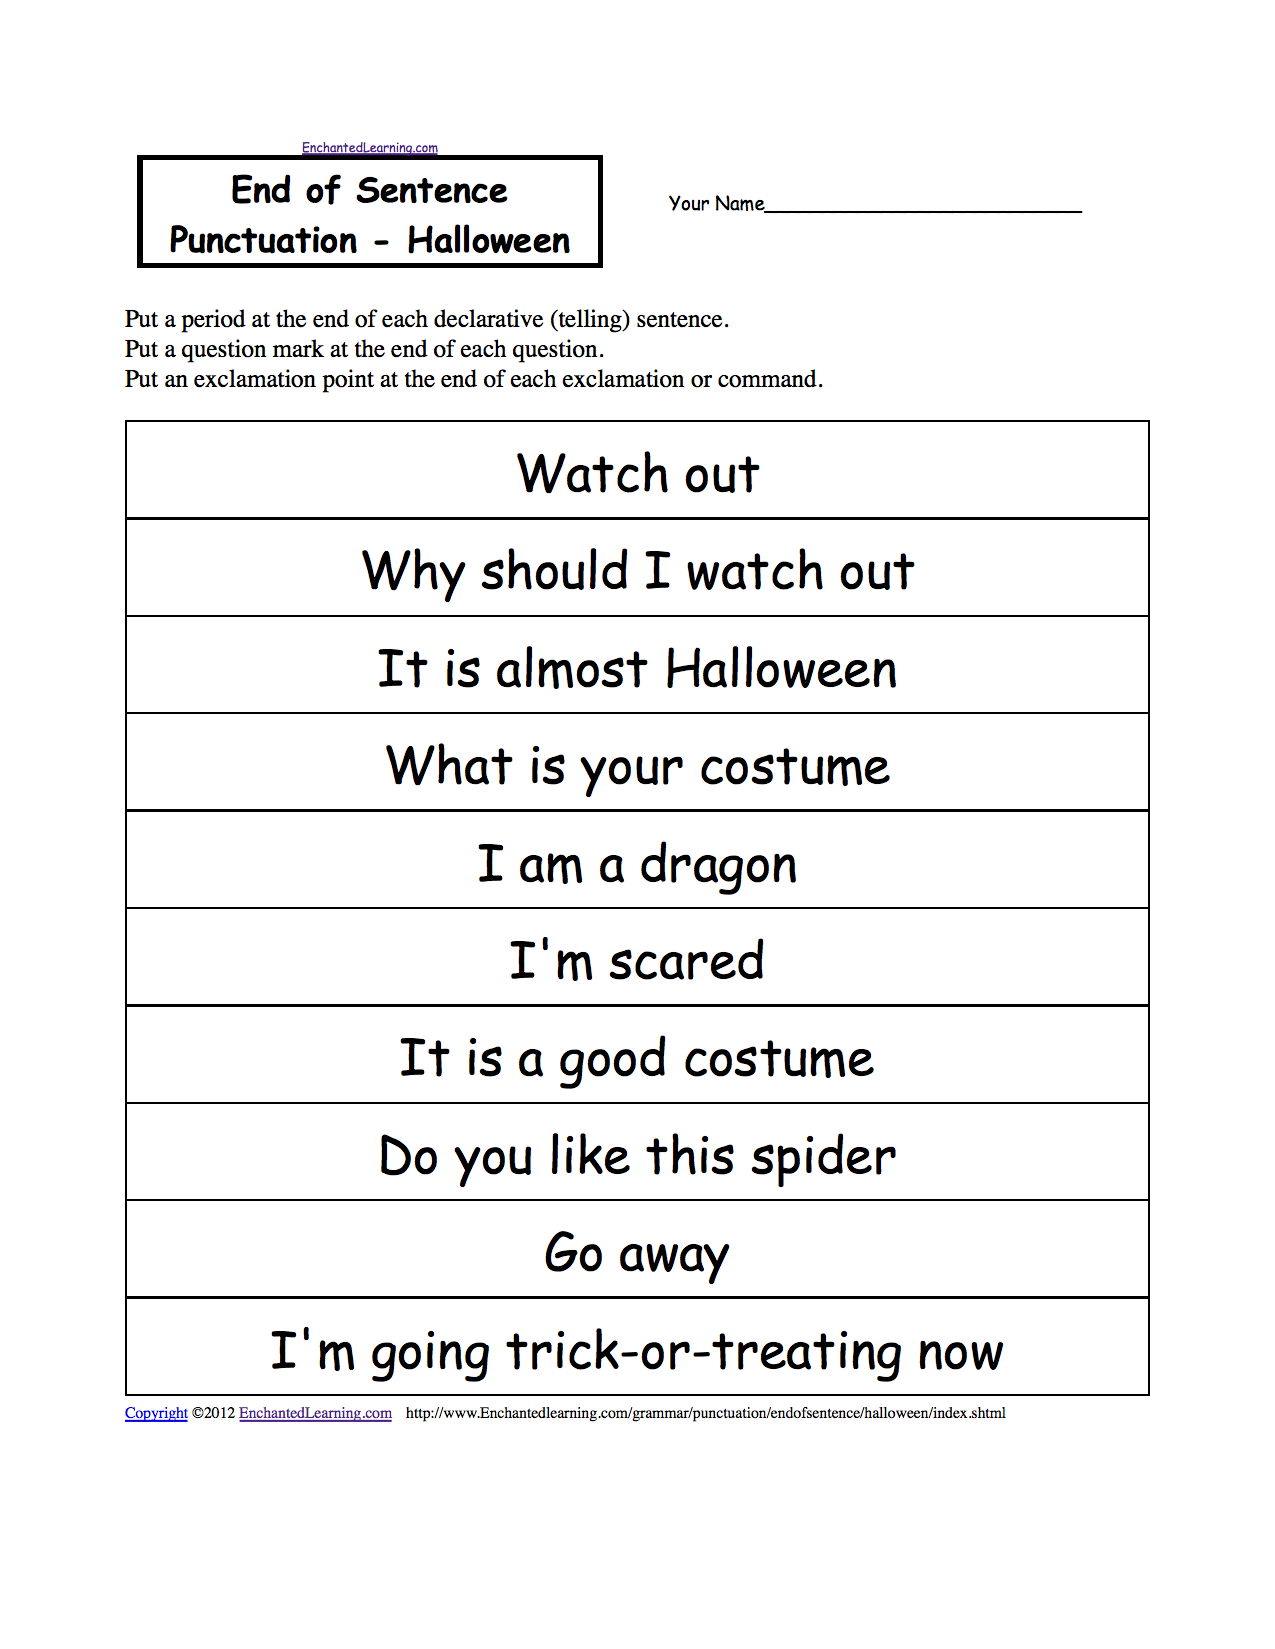 Worksheet Punctuation Worksheets end of sentence punctuation printable worksheets halloween